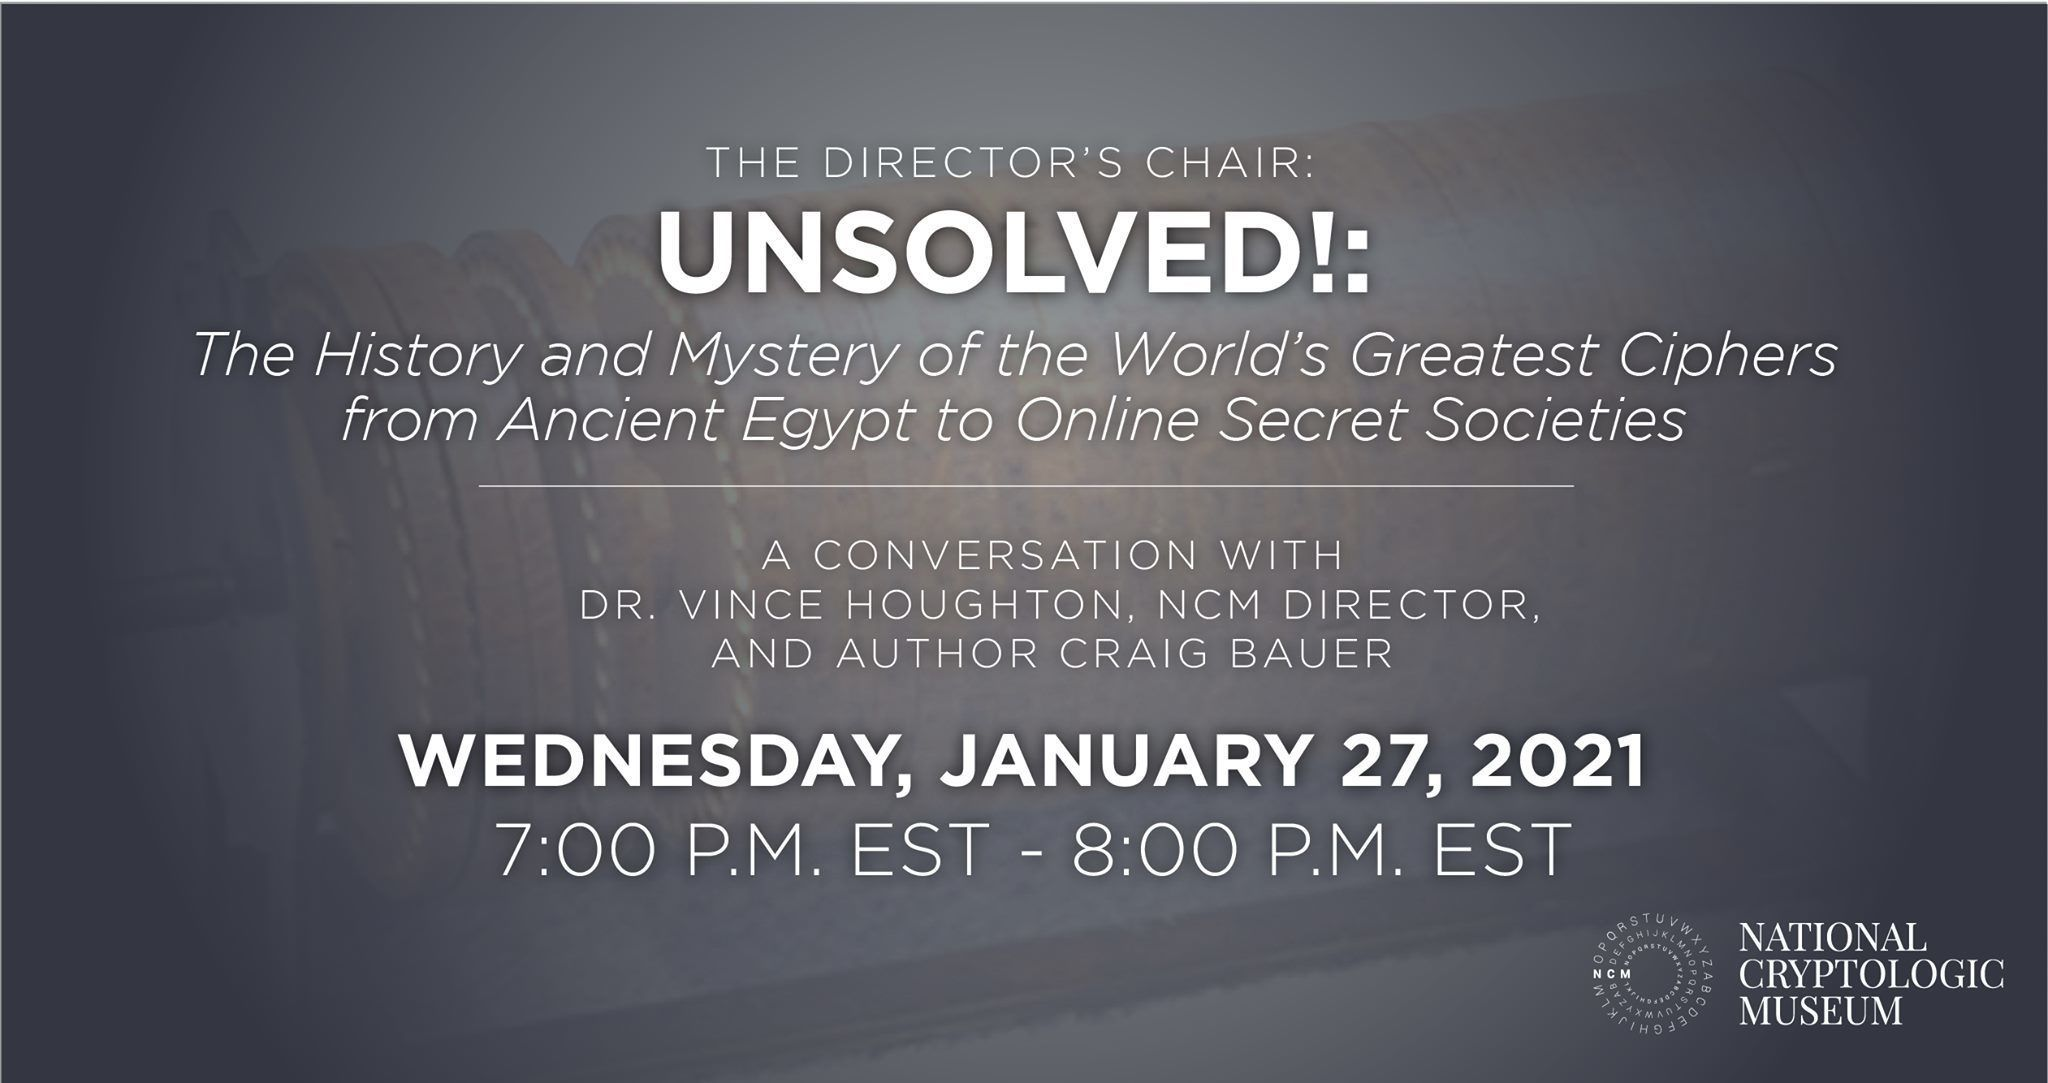 """The Director's Chair: """"Unsolved!: The History and Mystery of the World's Greatest Ciphers from Ancient Egypt to Online Secret Societies"""""""